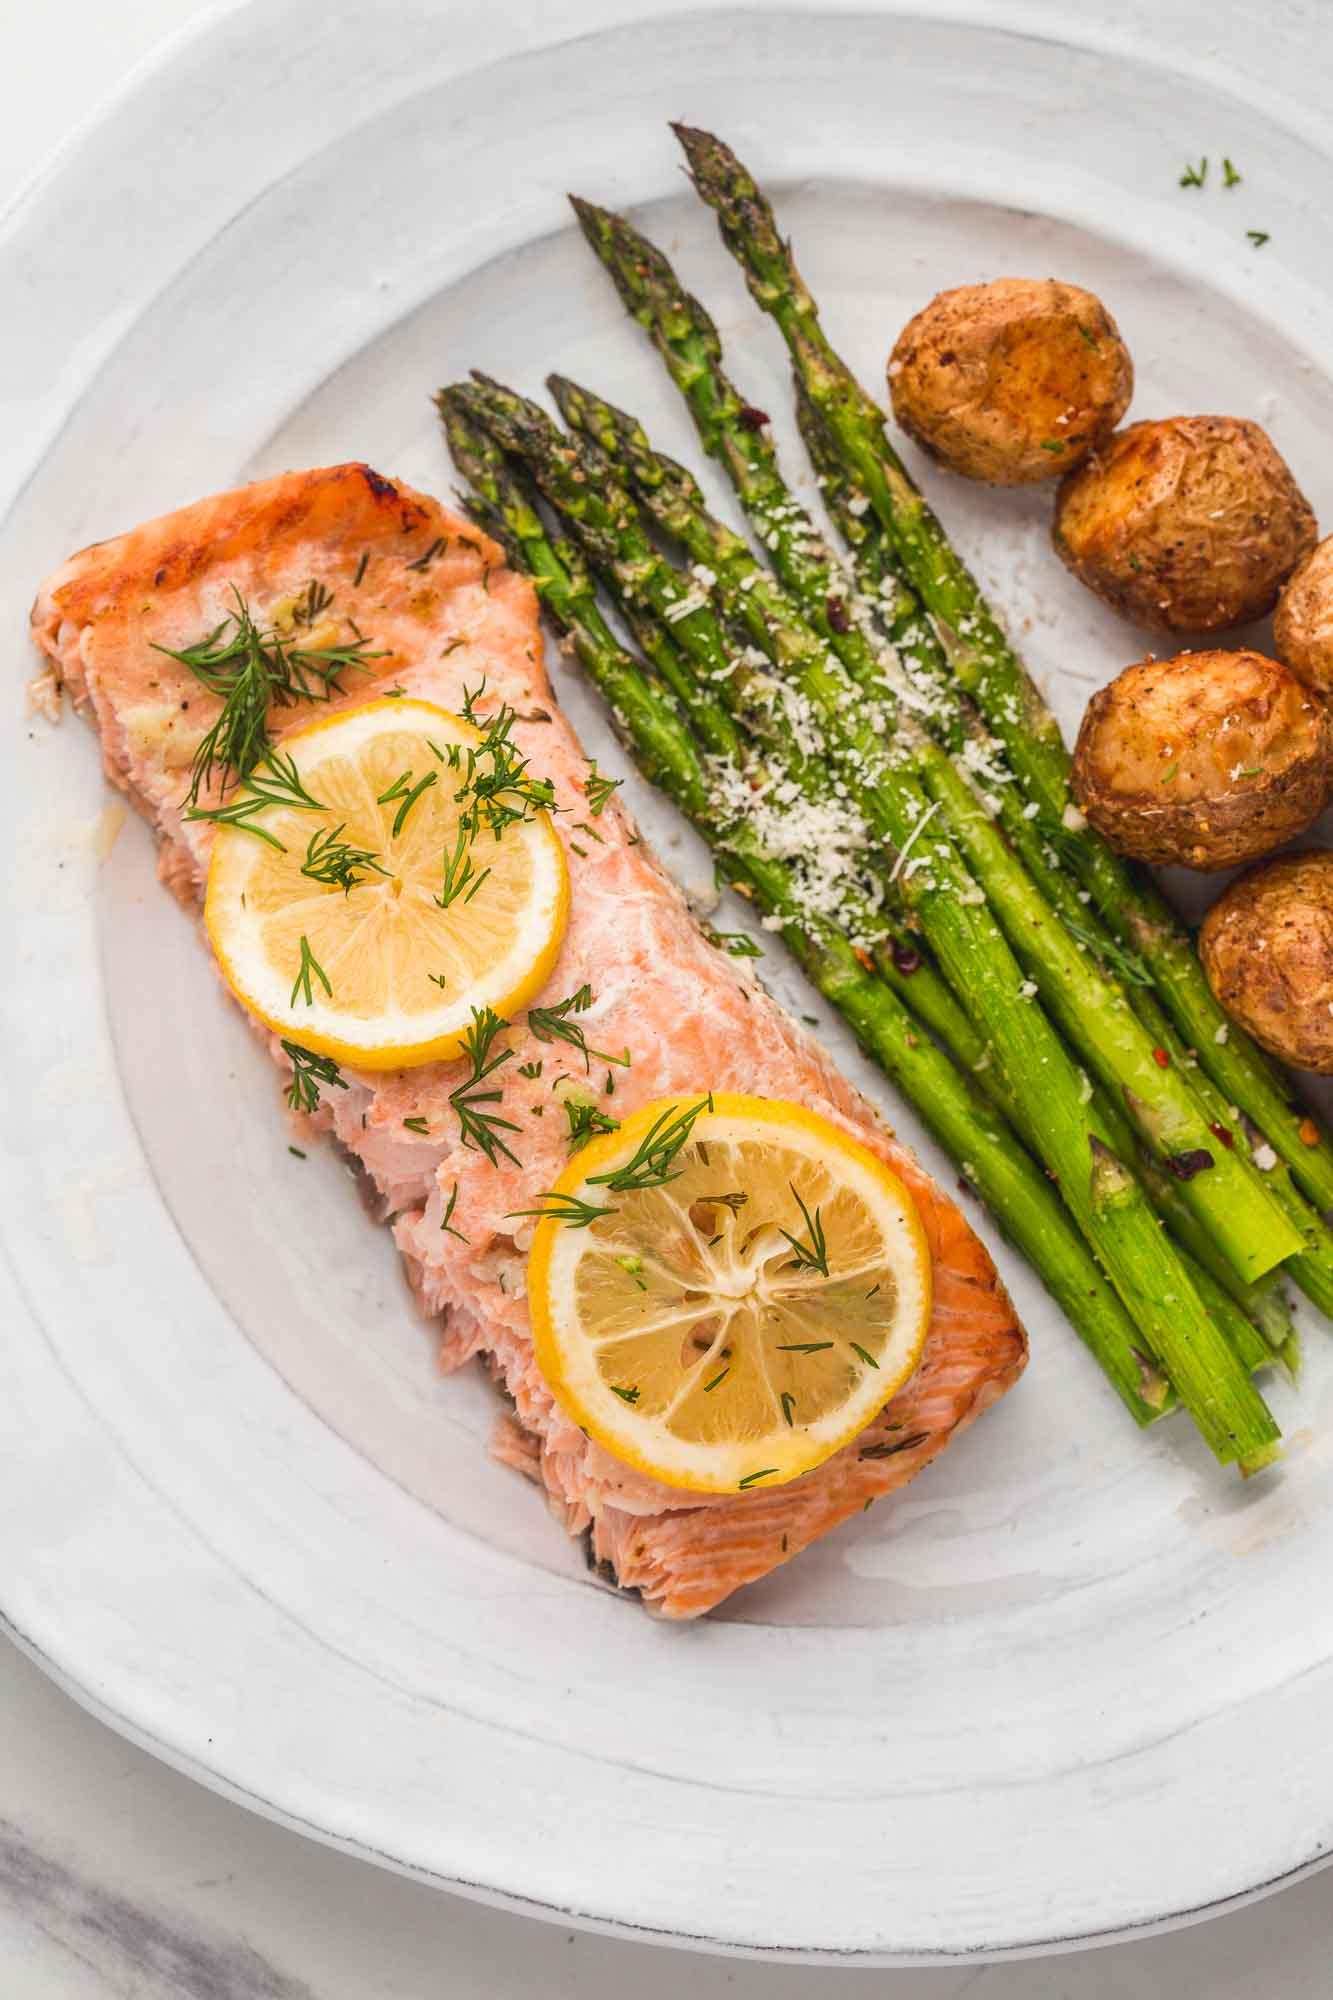 A slice of baked salmon served with roasted asparagus and roasted potatoes.